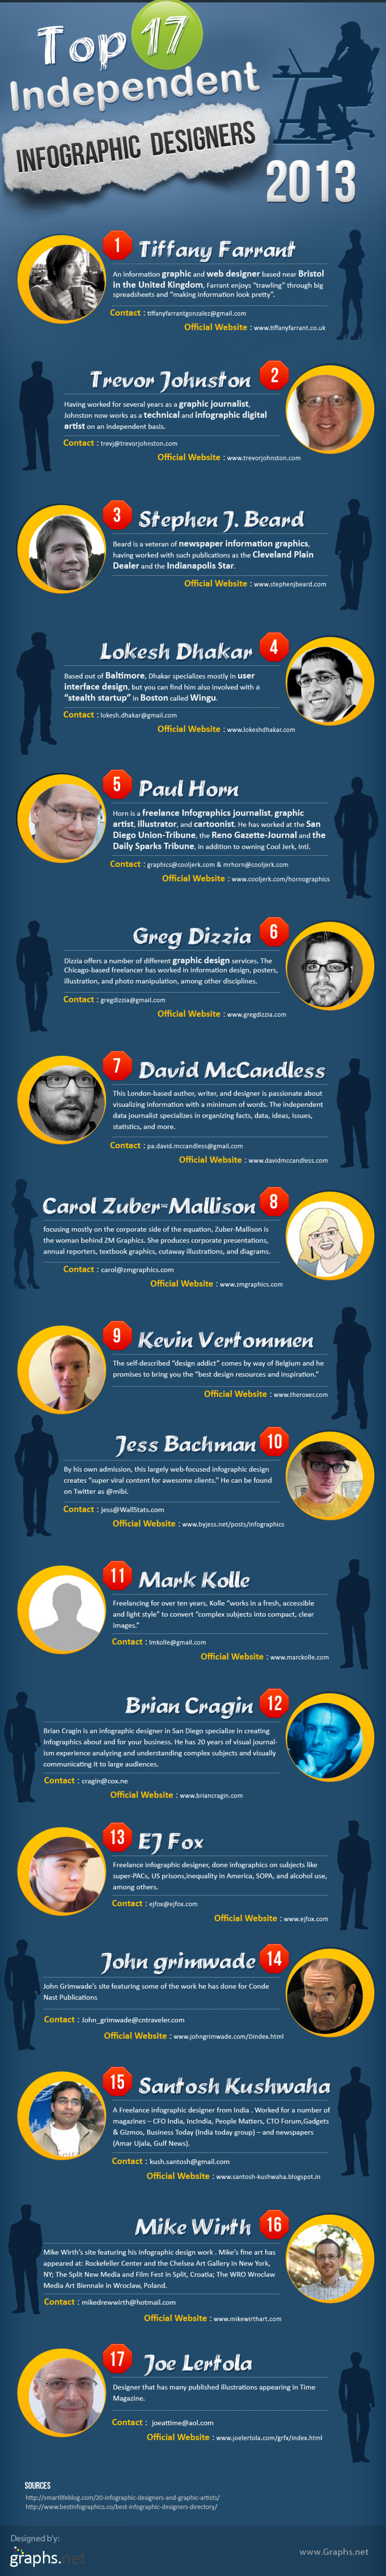 Top 17 Independent Infographic Designers 2013 Infographic